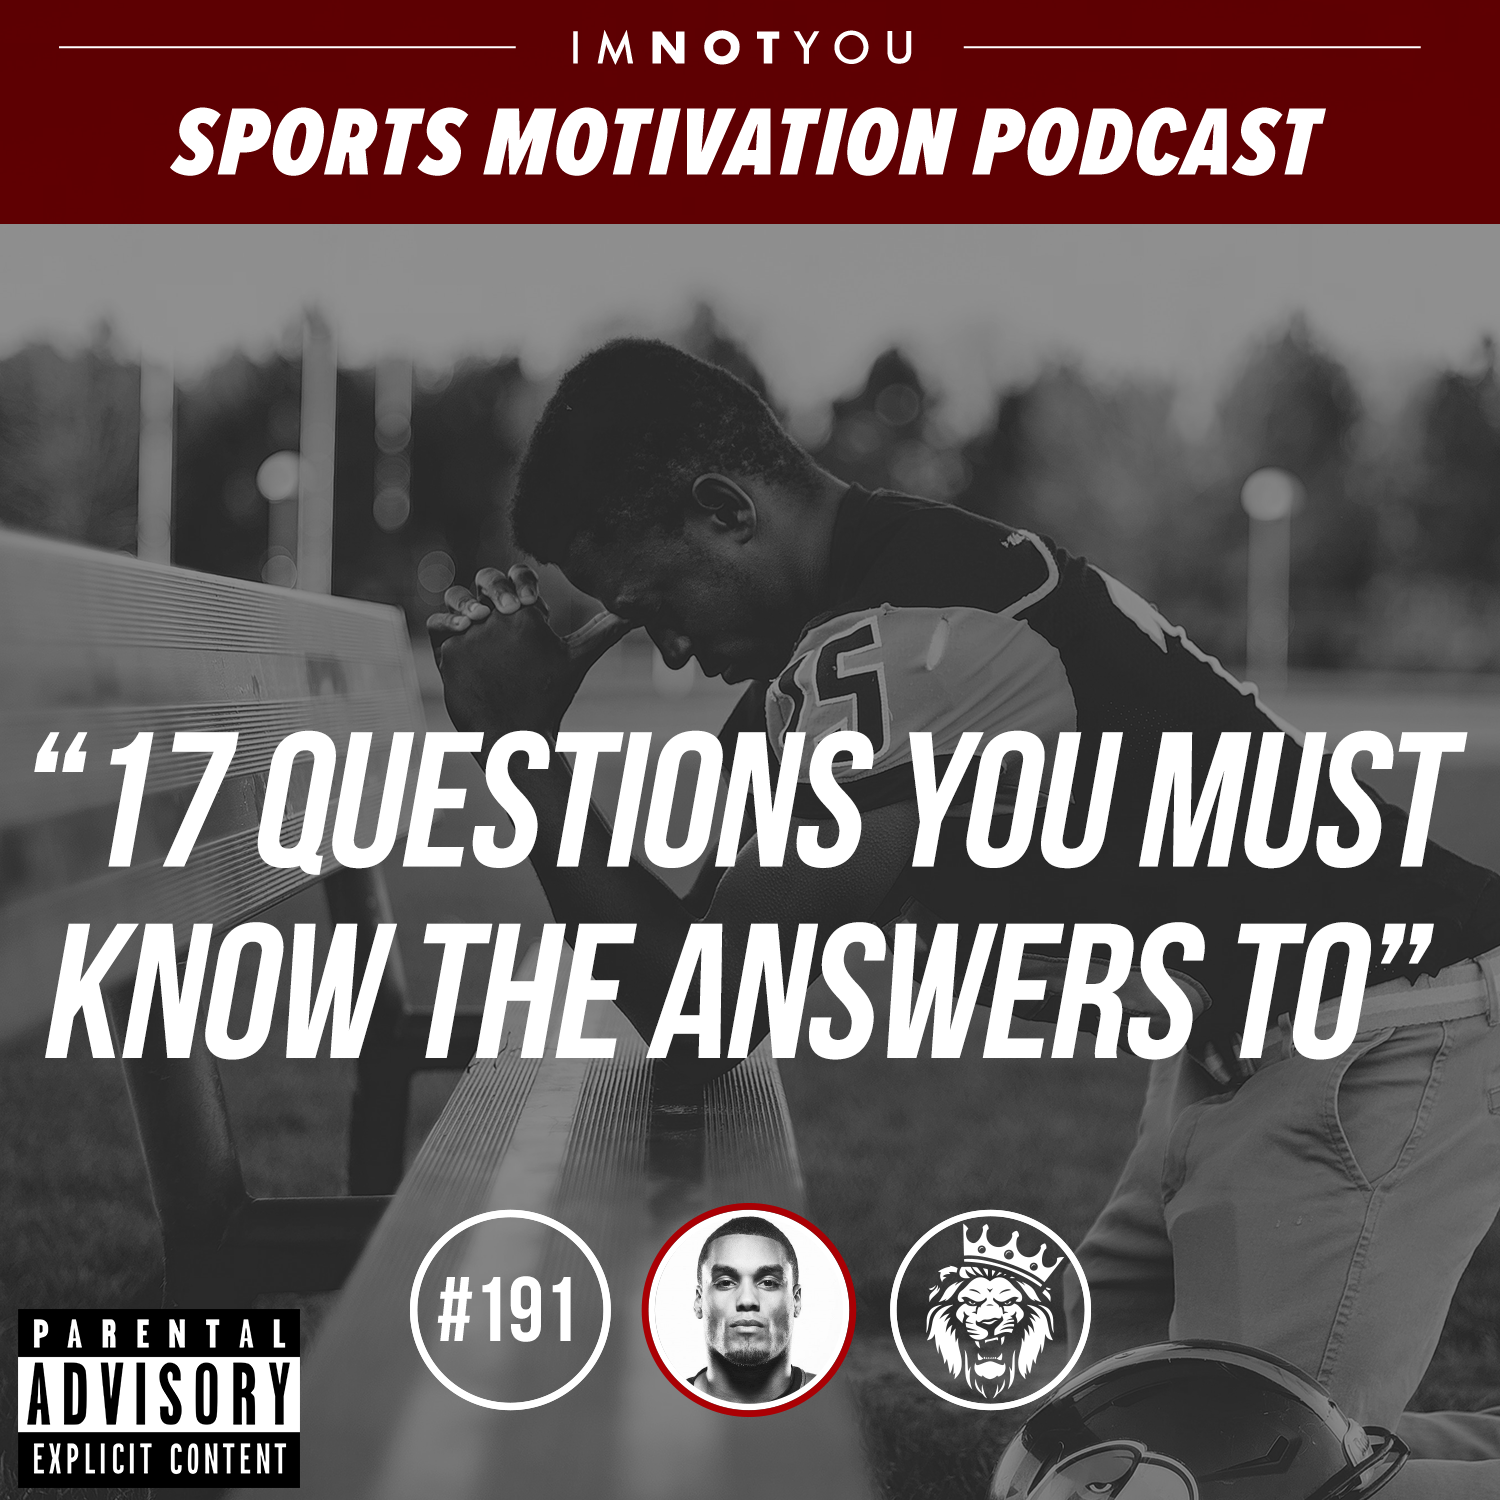 191: 17 questions that you must know the answers to